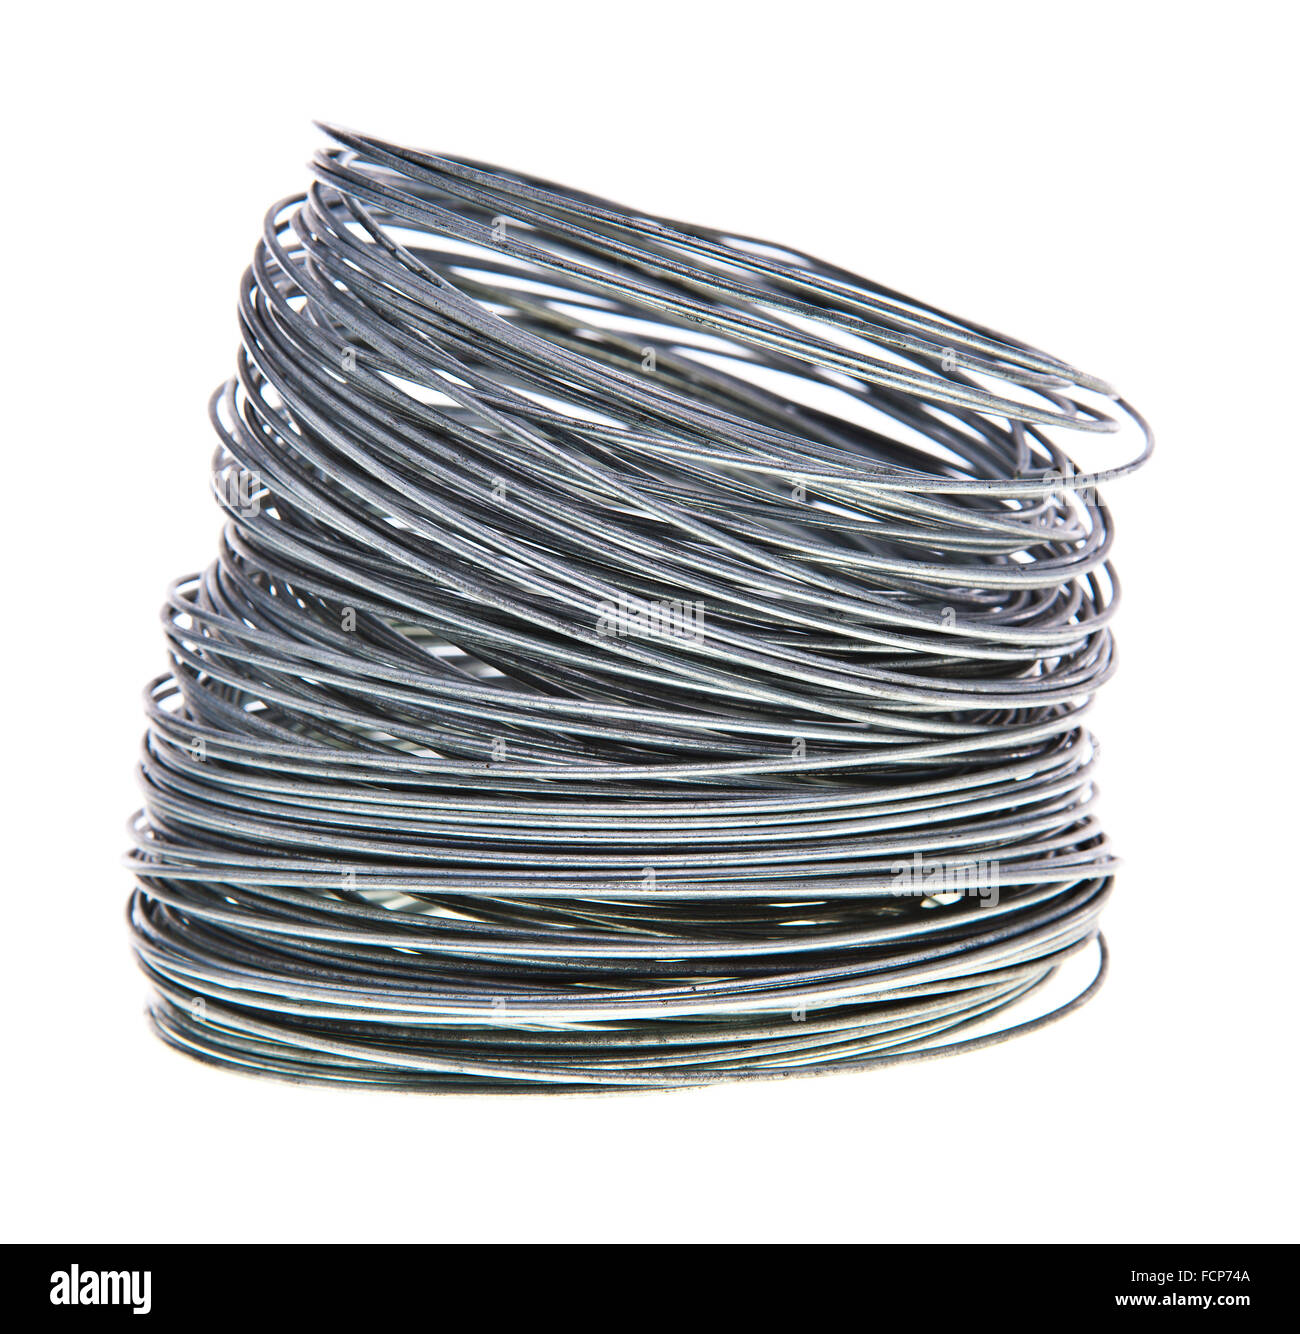 Coil of galvanized wires on white background - Stock Image